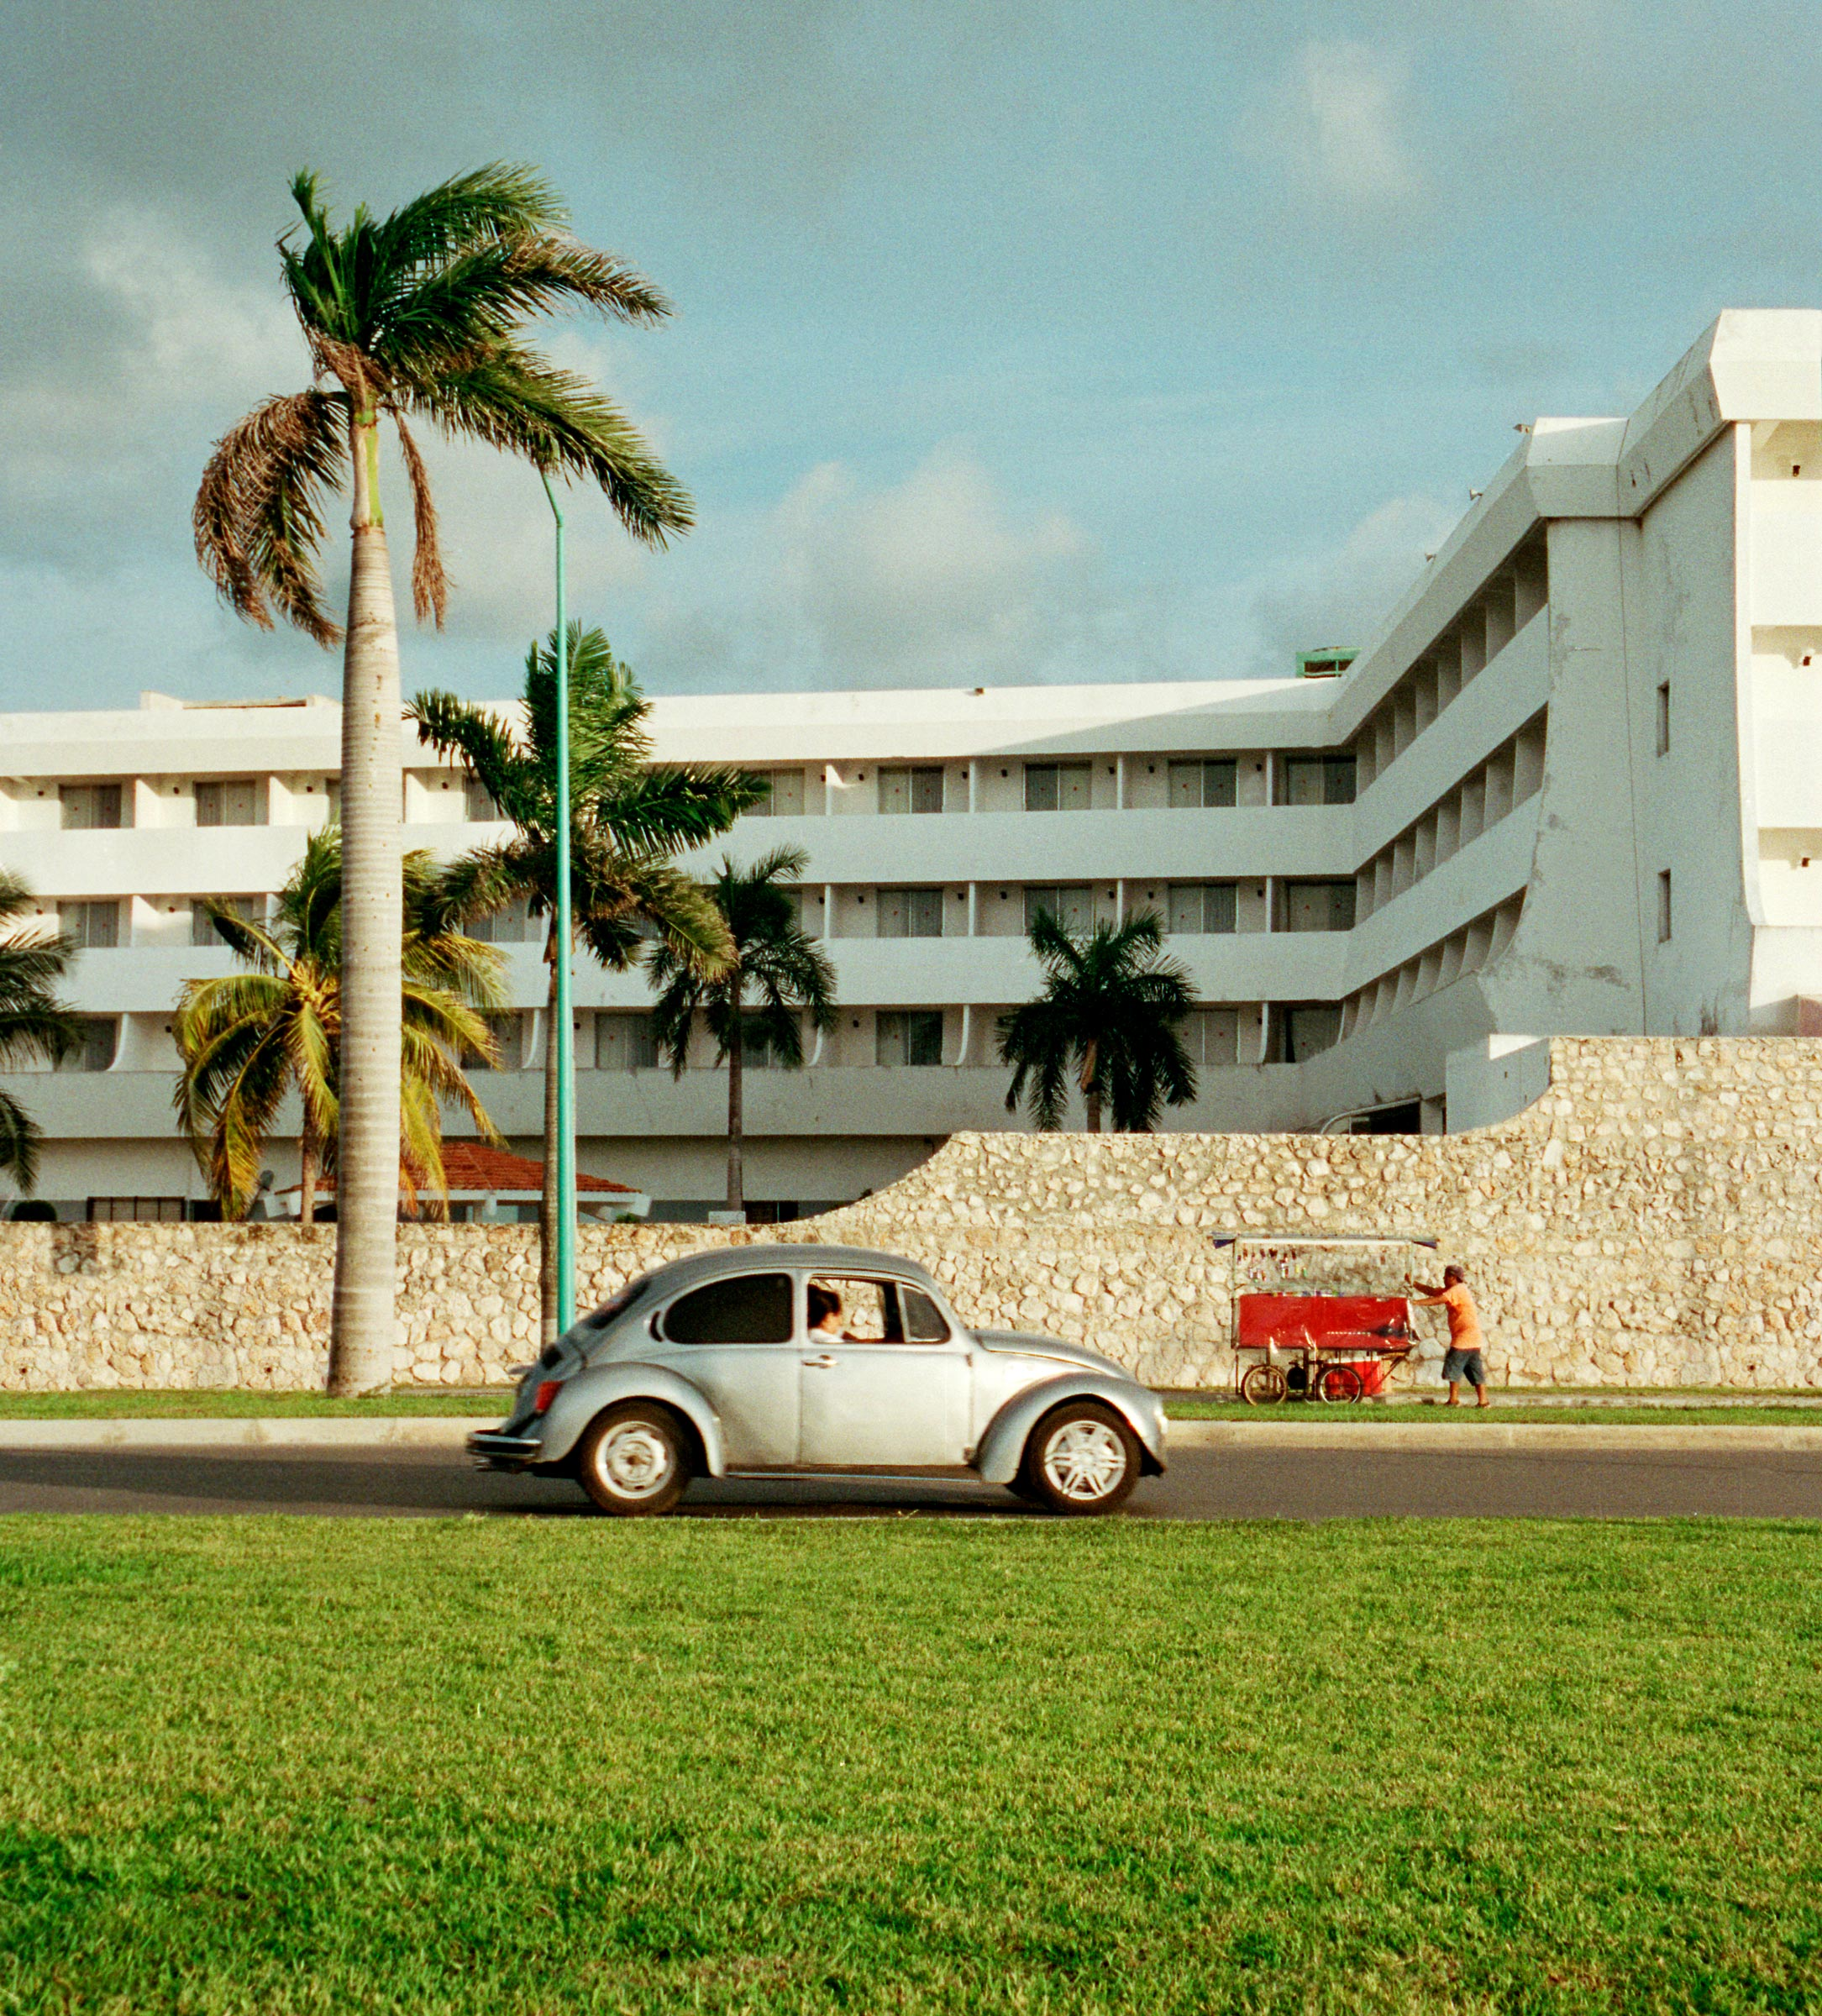 silver vw beetle driving past white hotel and palm trees